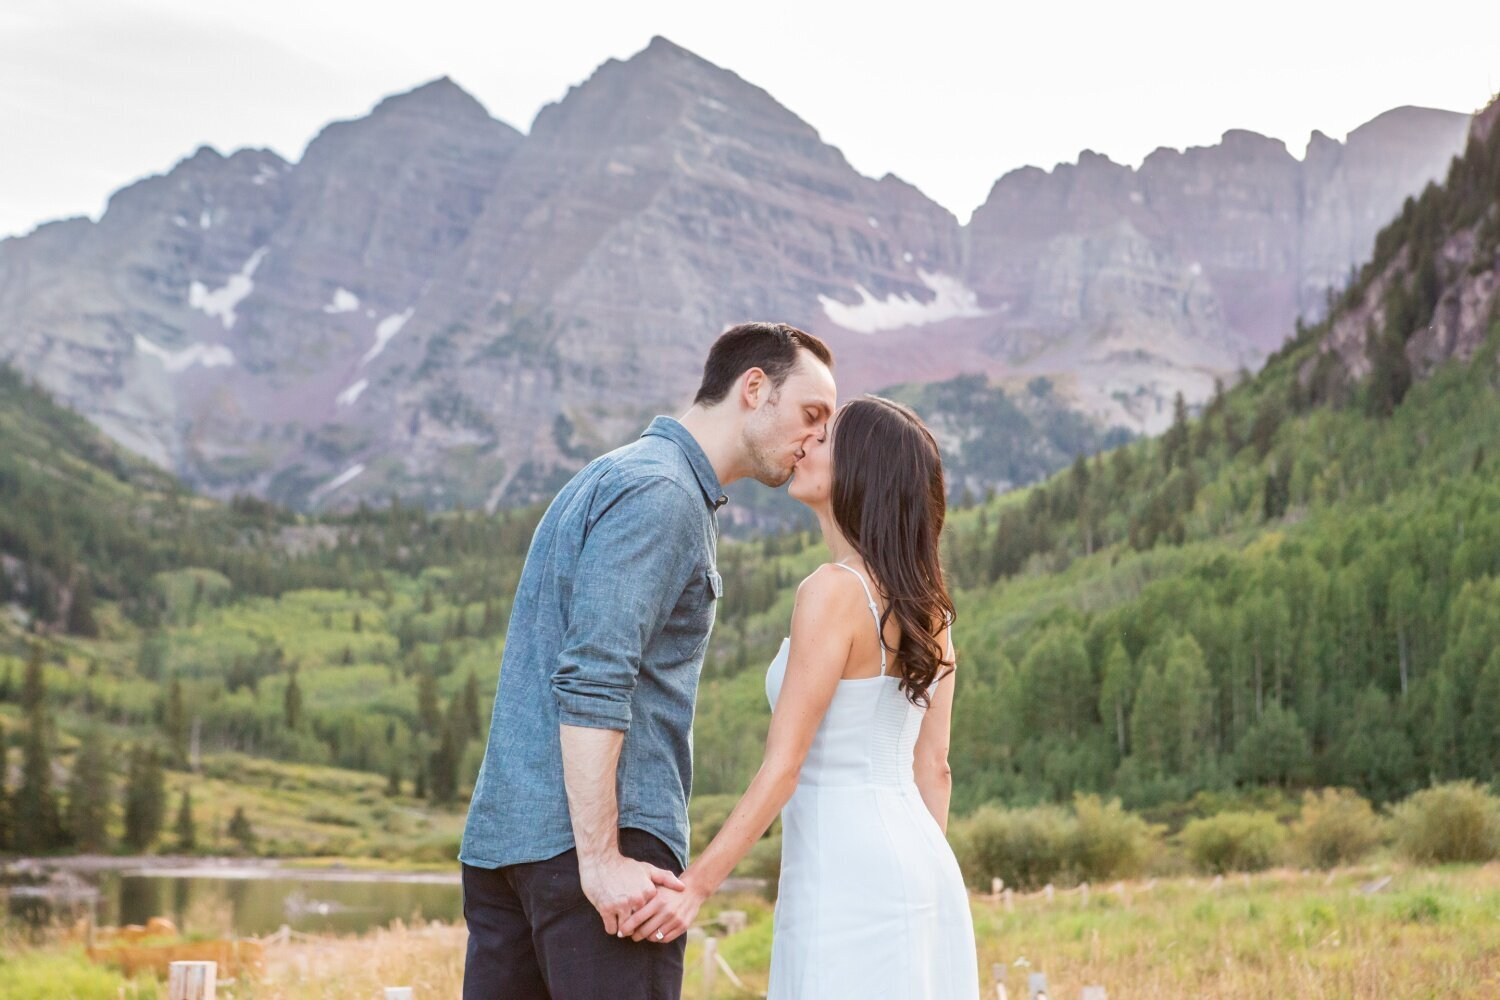 Engagement photography at Maroon Bells in Aspen